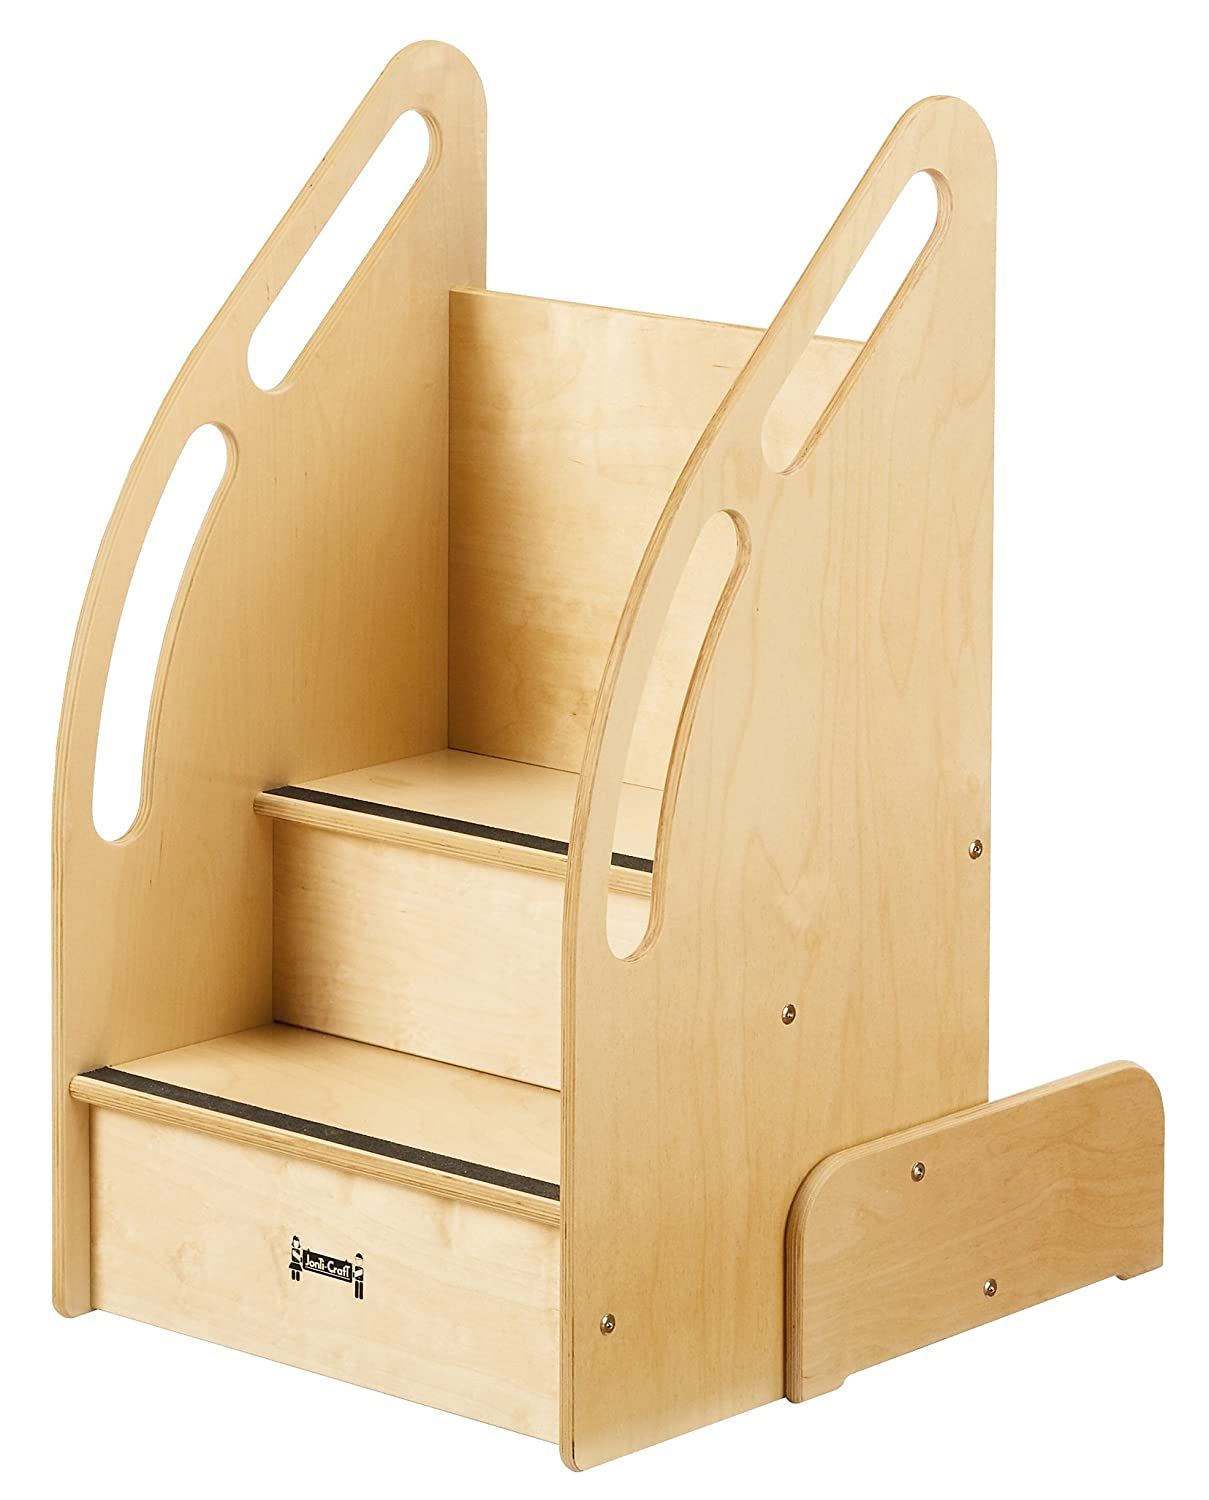 Etonnant This One Of A Kind Step Stool Features Rails With Cut Out Hand Holds On  Both Sides For Easy Climbing, Smoothed Edges, And A Lifetime Warranty.